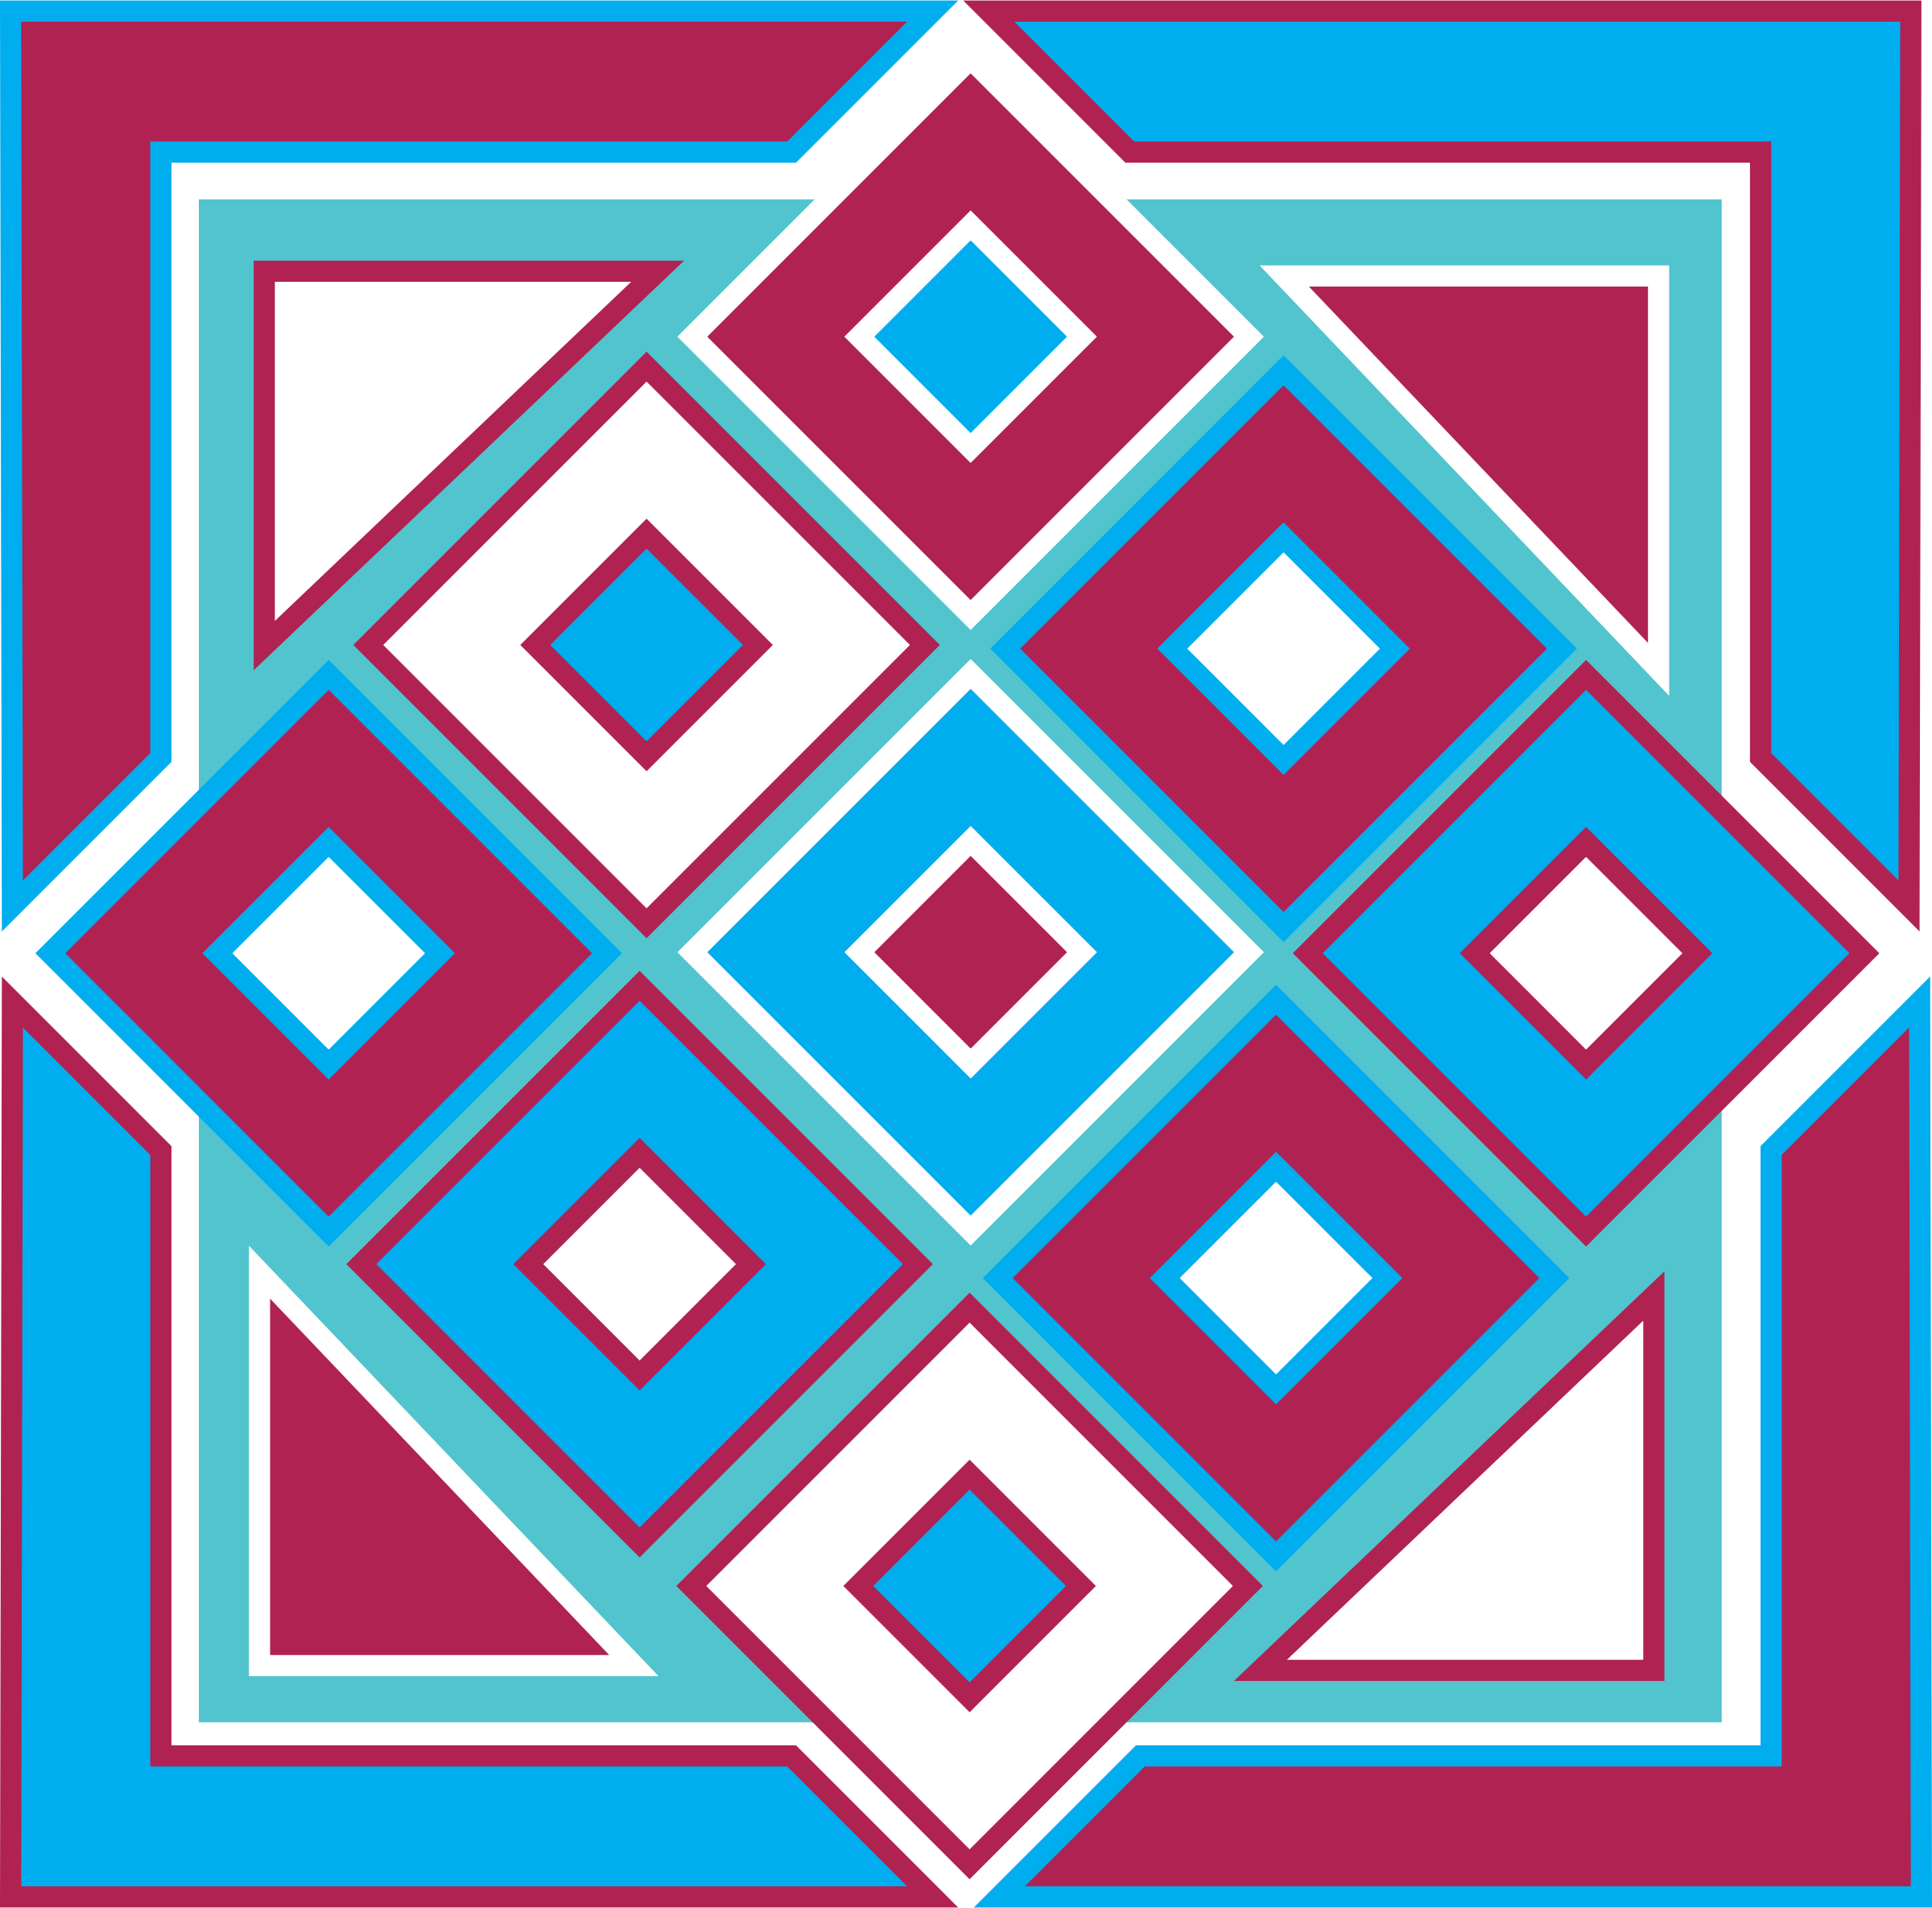 Square Box Design Blue, Red & Aqua by dkonz01